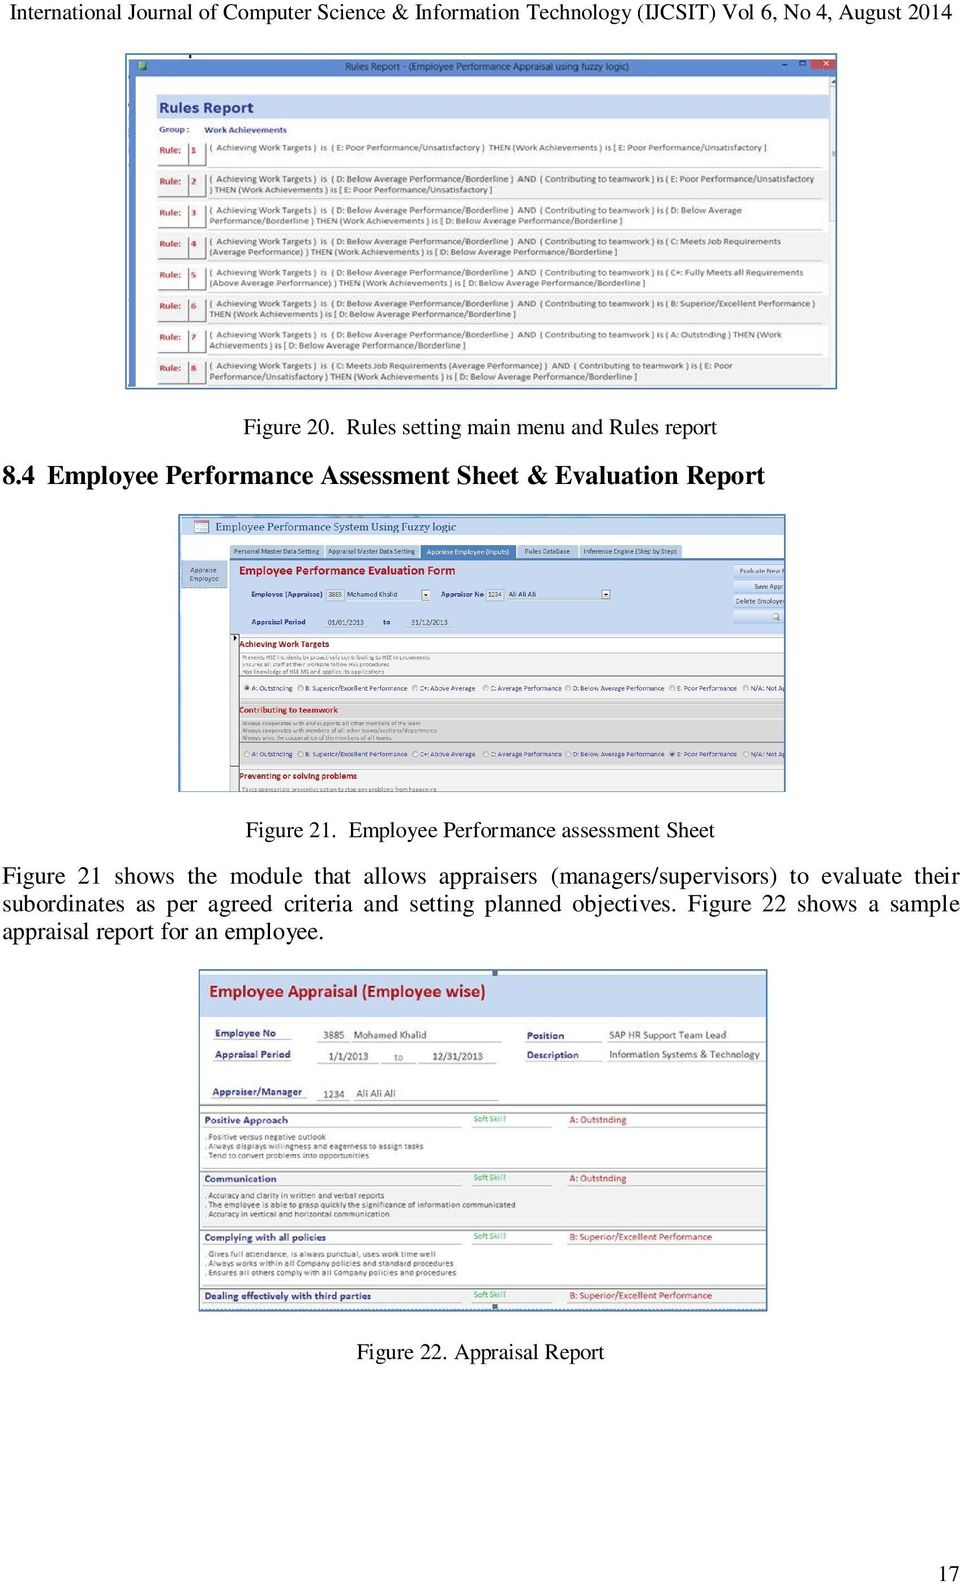 Employee Performance assessment Sheet Figure 21 shows the module that allows appraisers